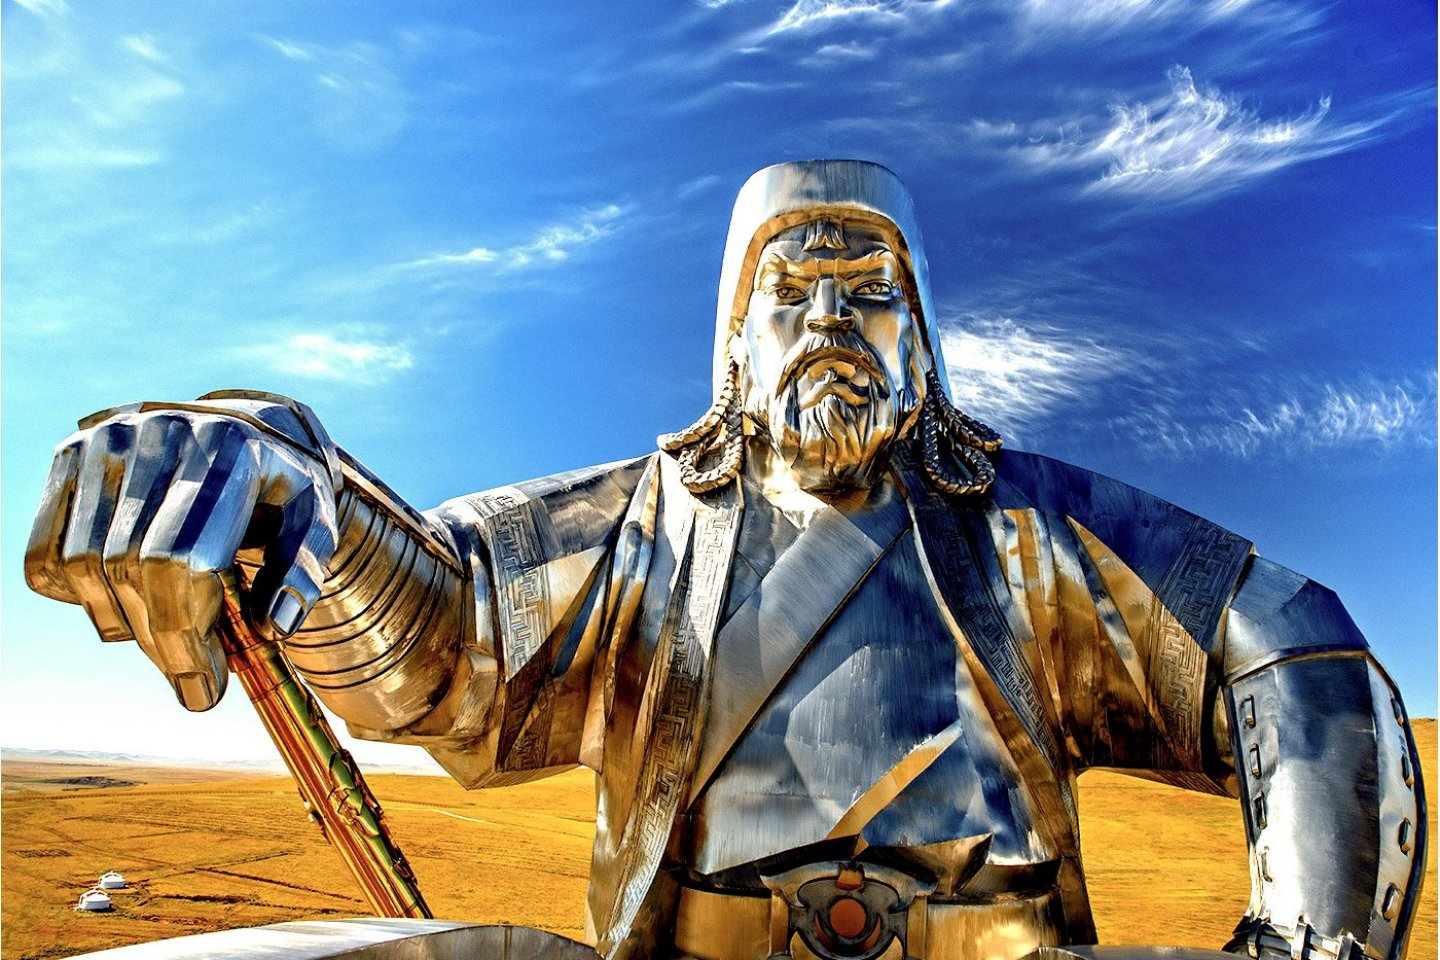 It takes nerves of steel to cook like Genghis Khan